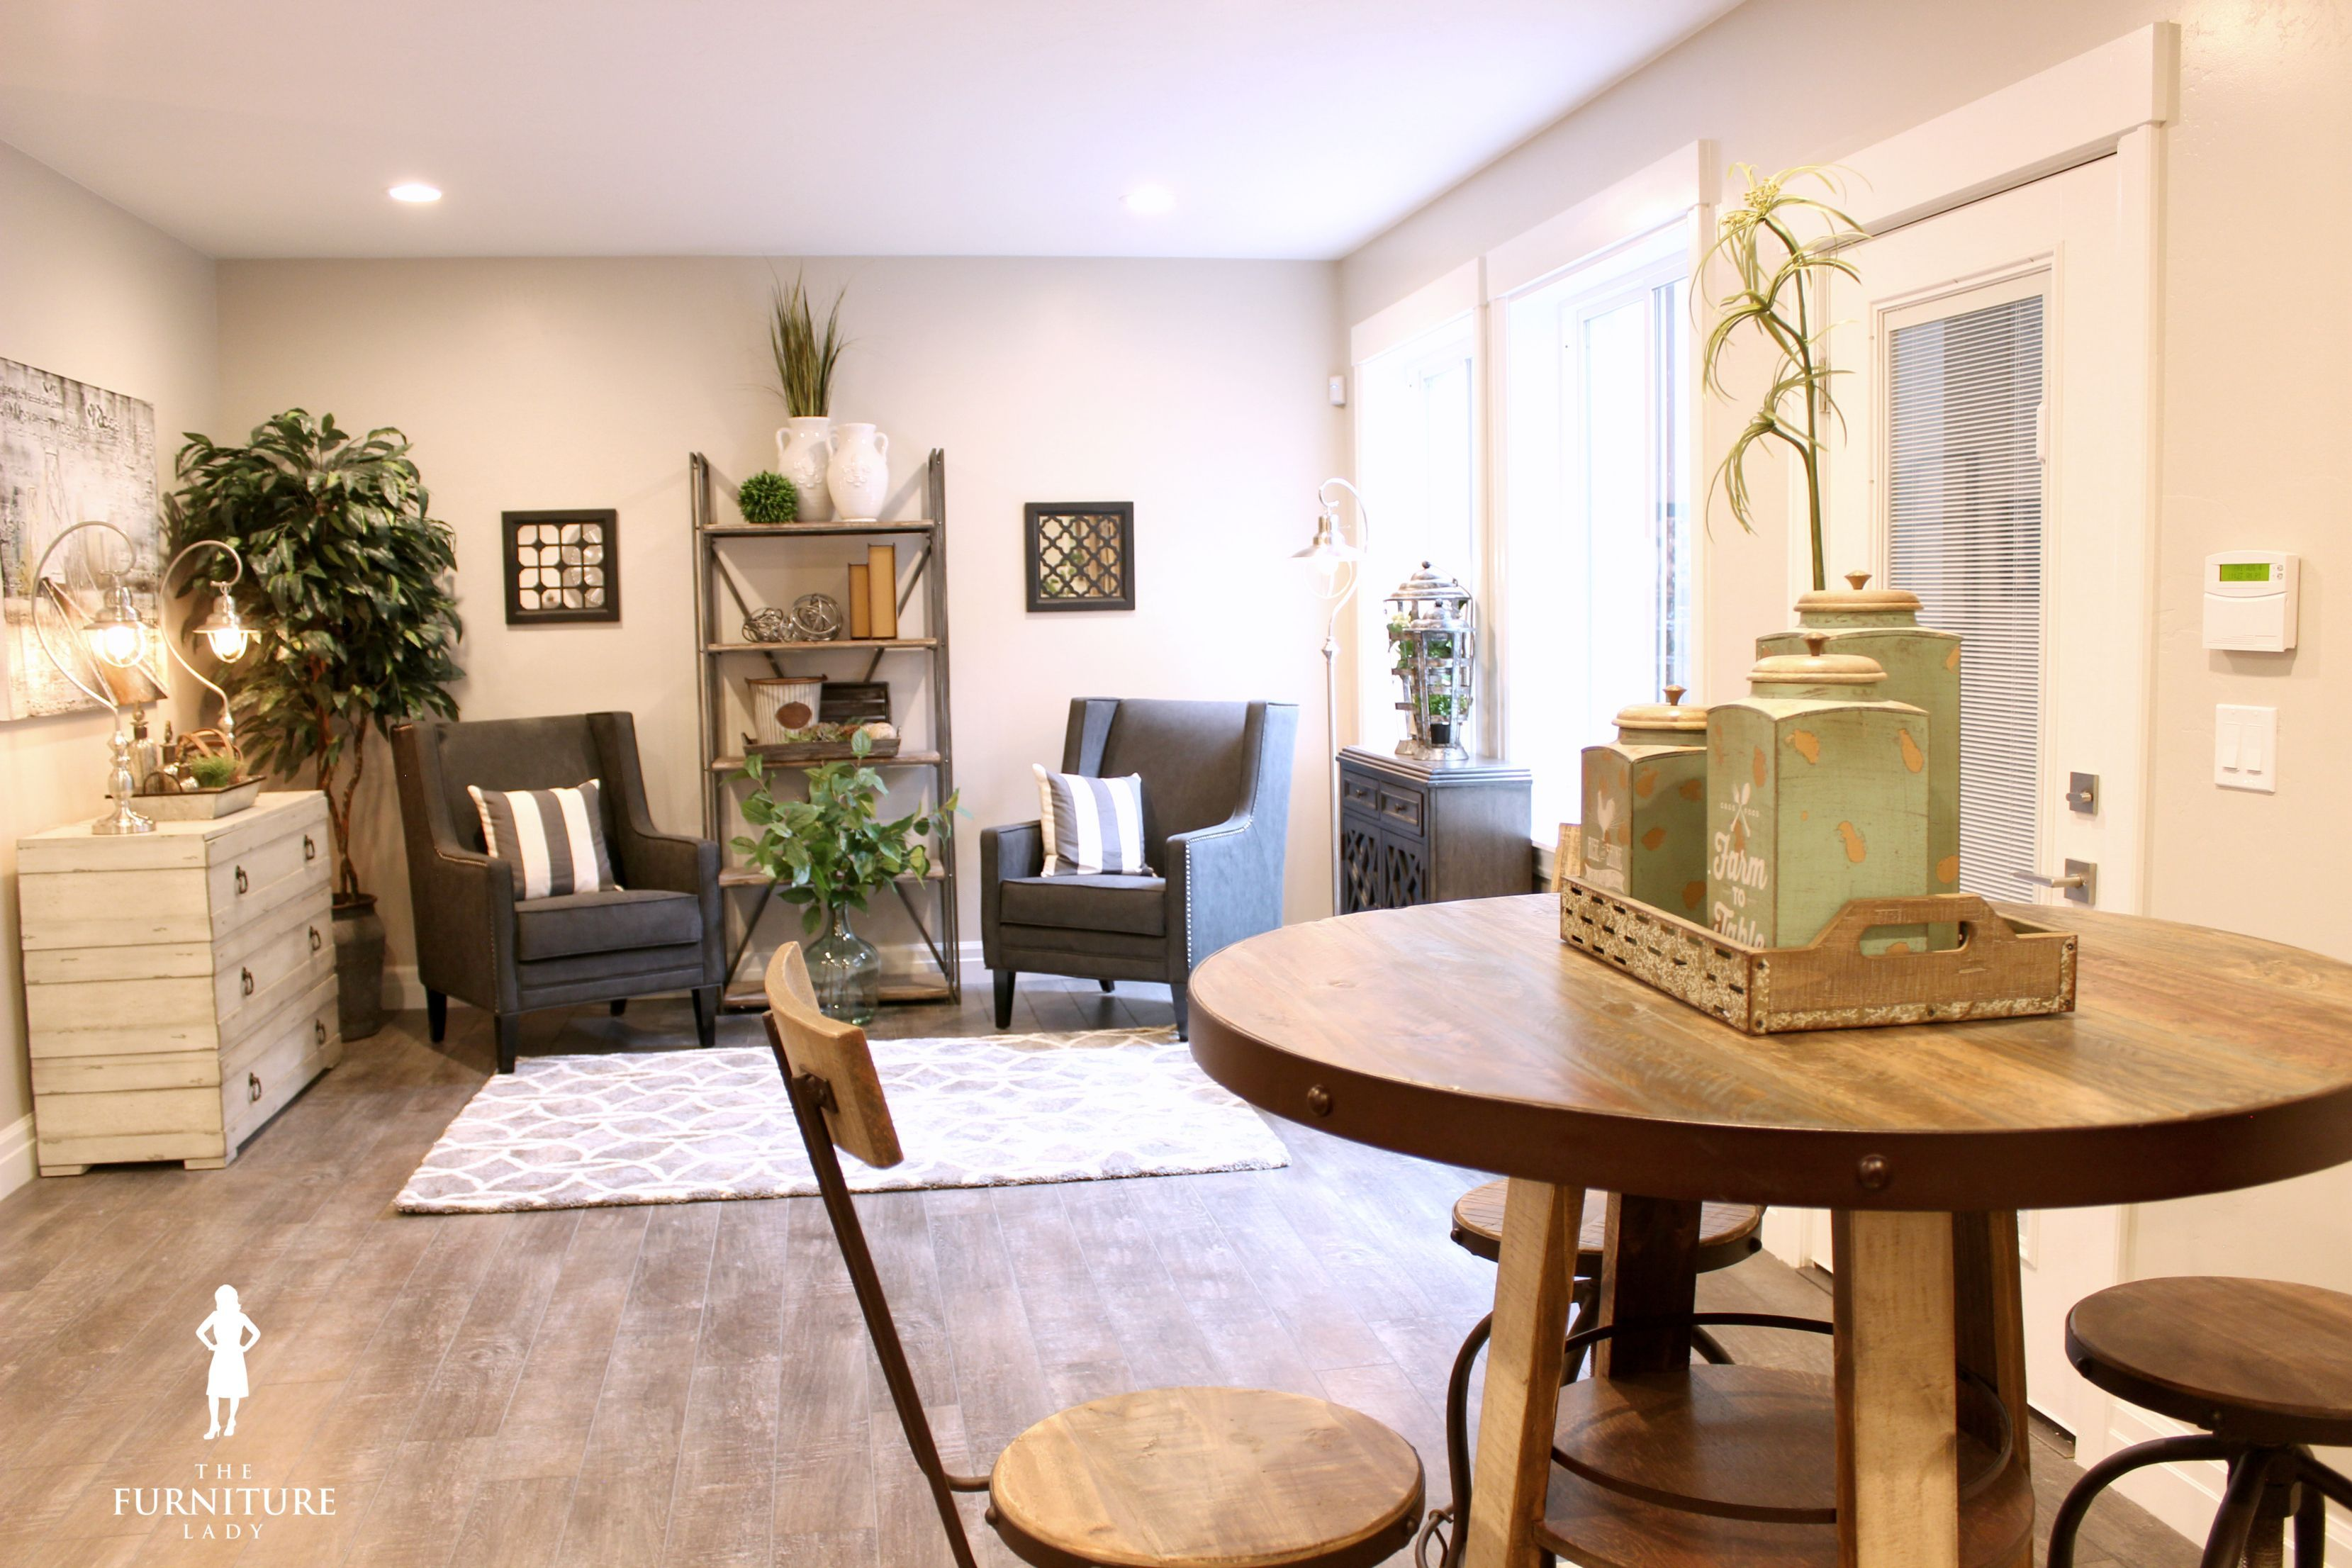 The Furniture Lady in Utah and Las Vegas have unbeatable prices on